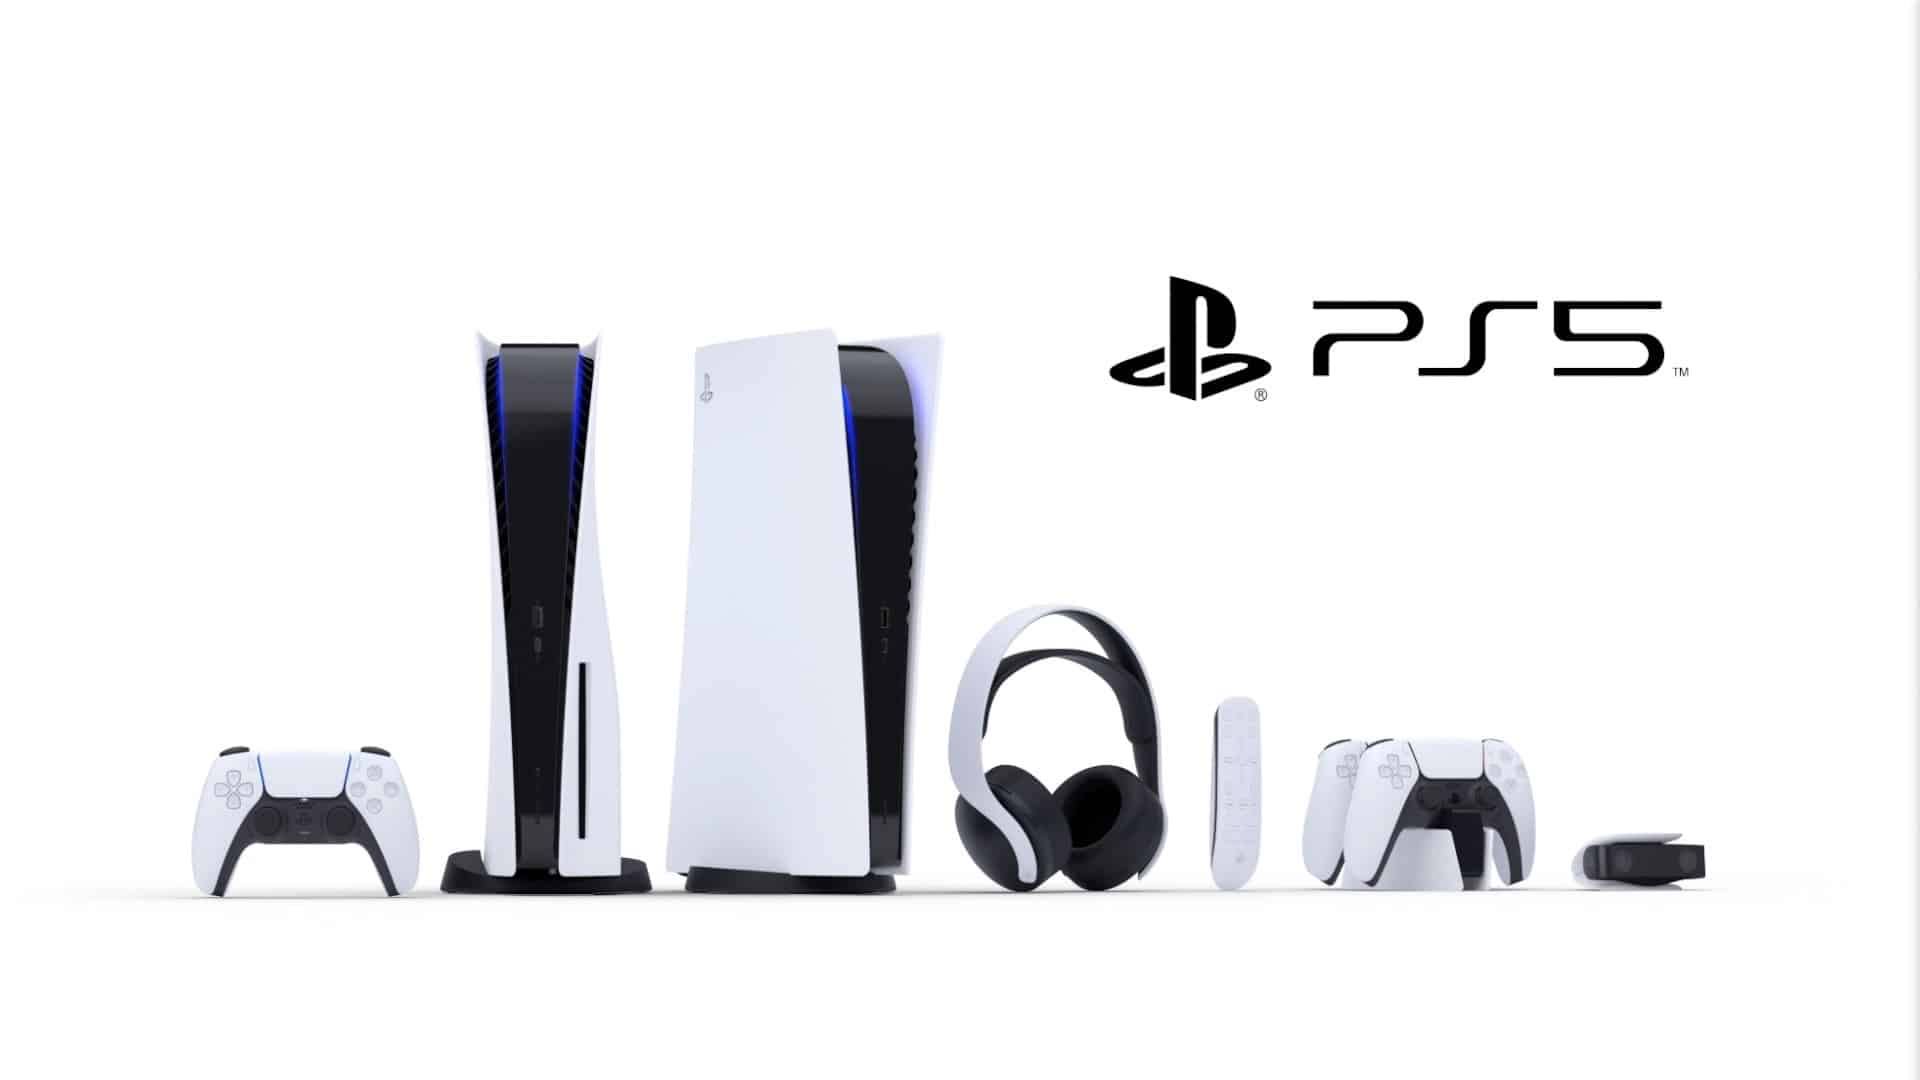 PS5 Accessory Pack Shots Reveal Charging Station Looks Like a Console - GLITCHED